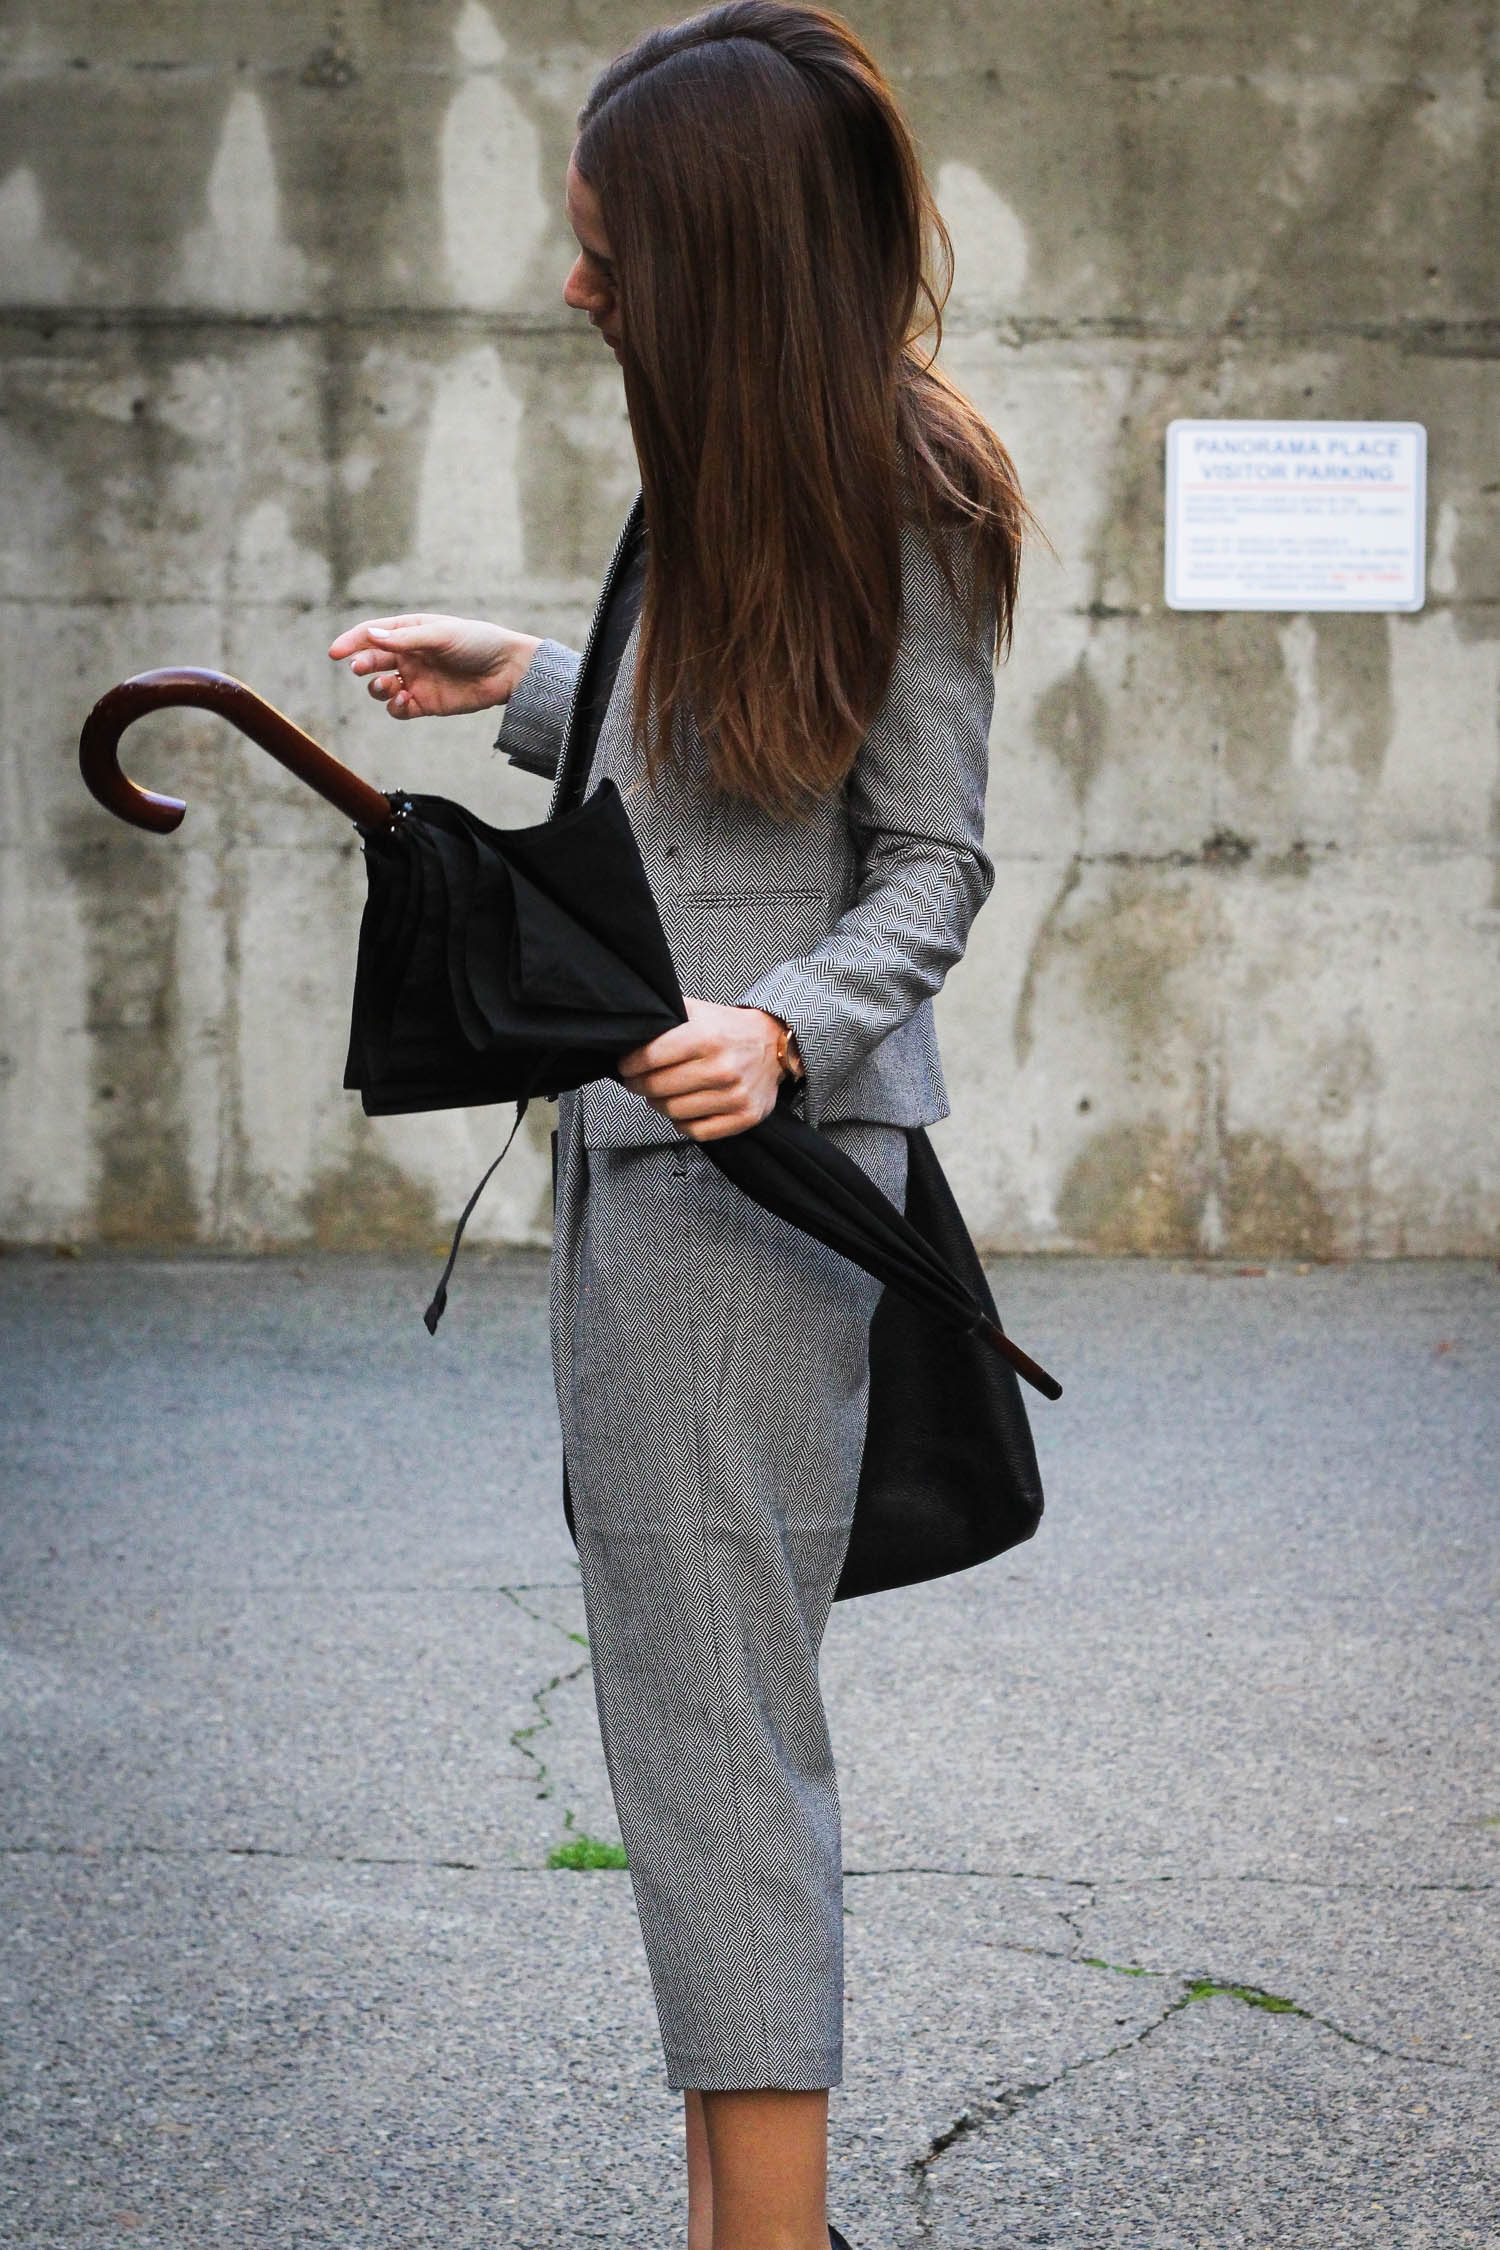 Wearing a grey armani exchange suit